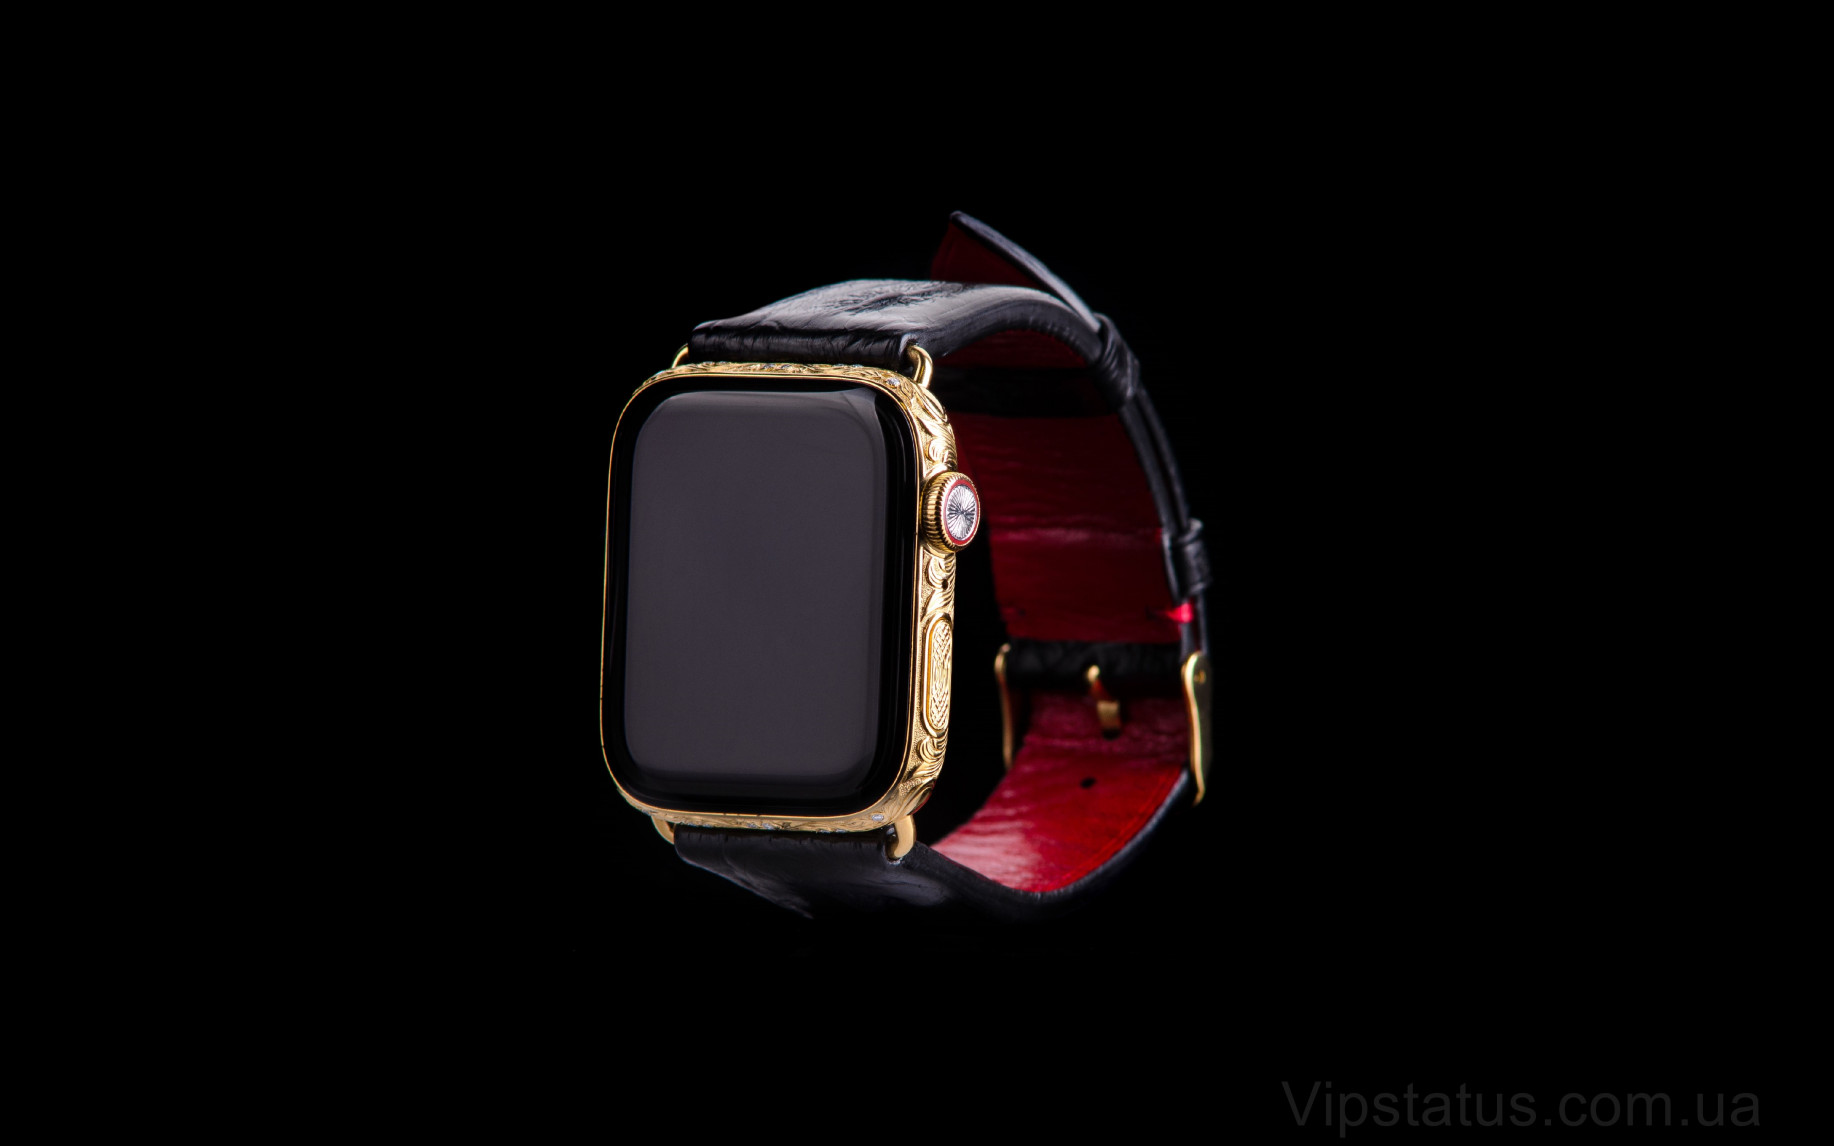 Элитный Diamond Monarch Apple Watch 5 Diamond Monarch Apple Watch 5 изображение 1